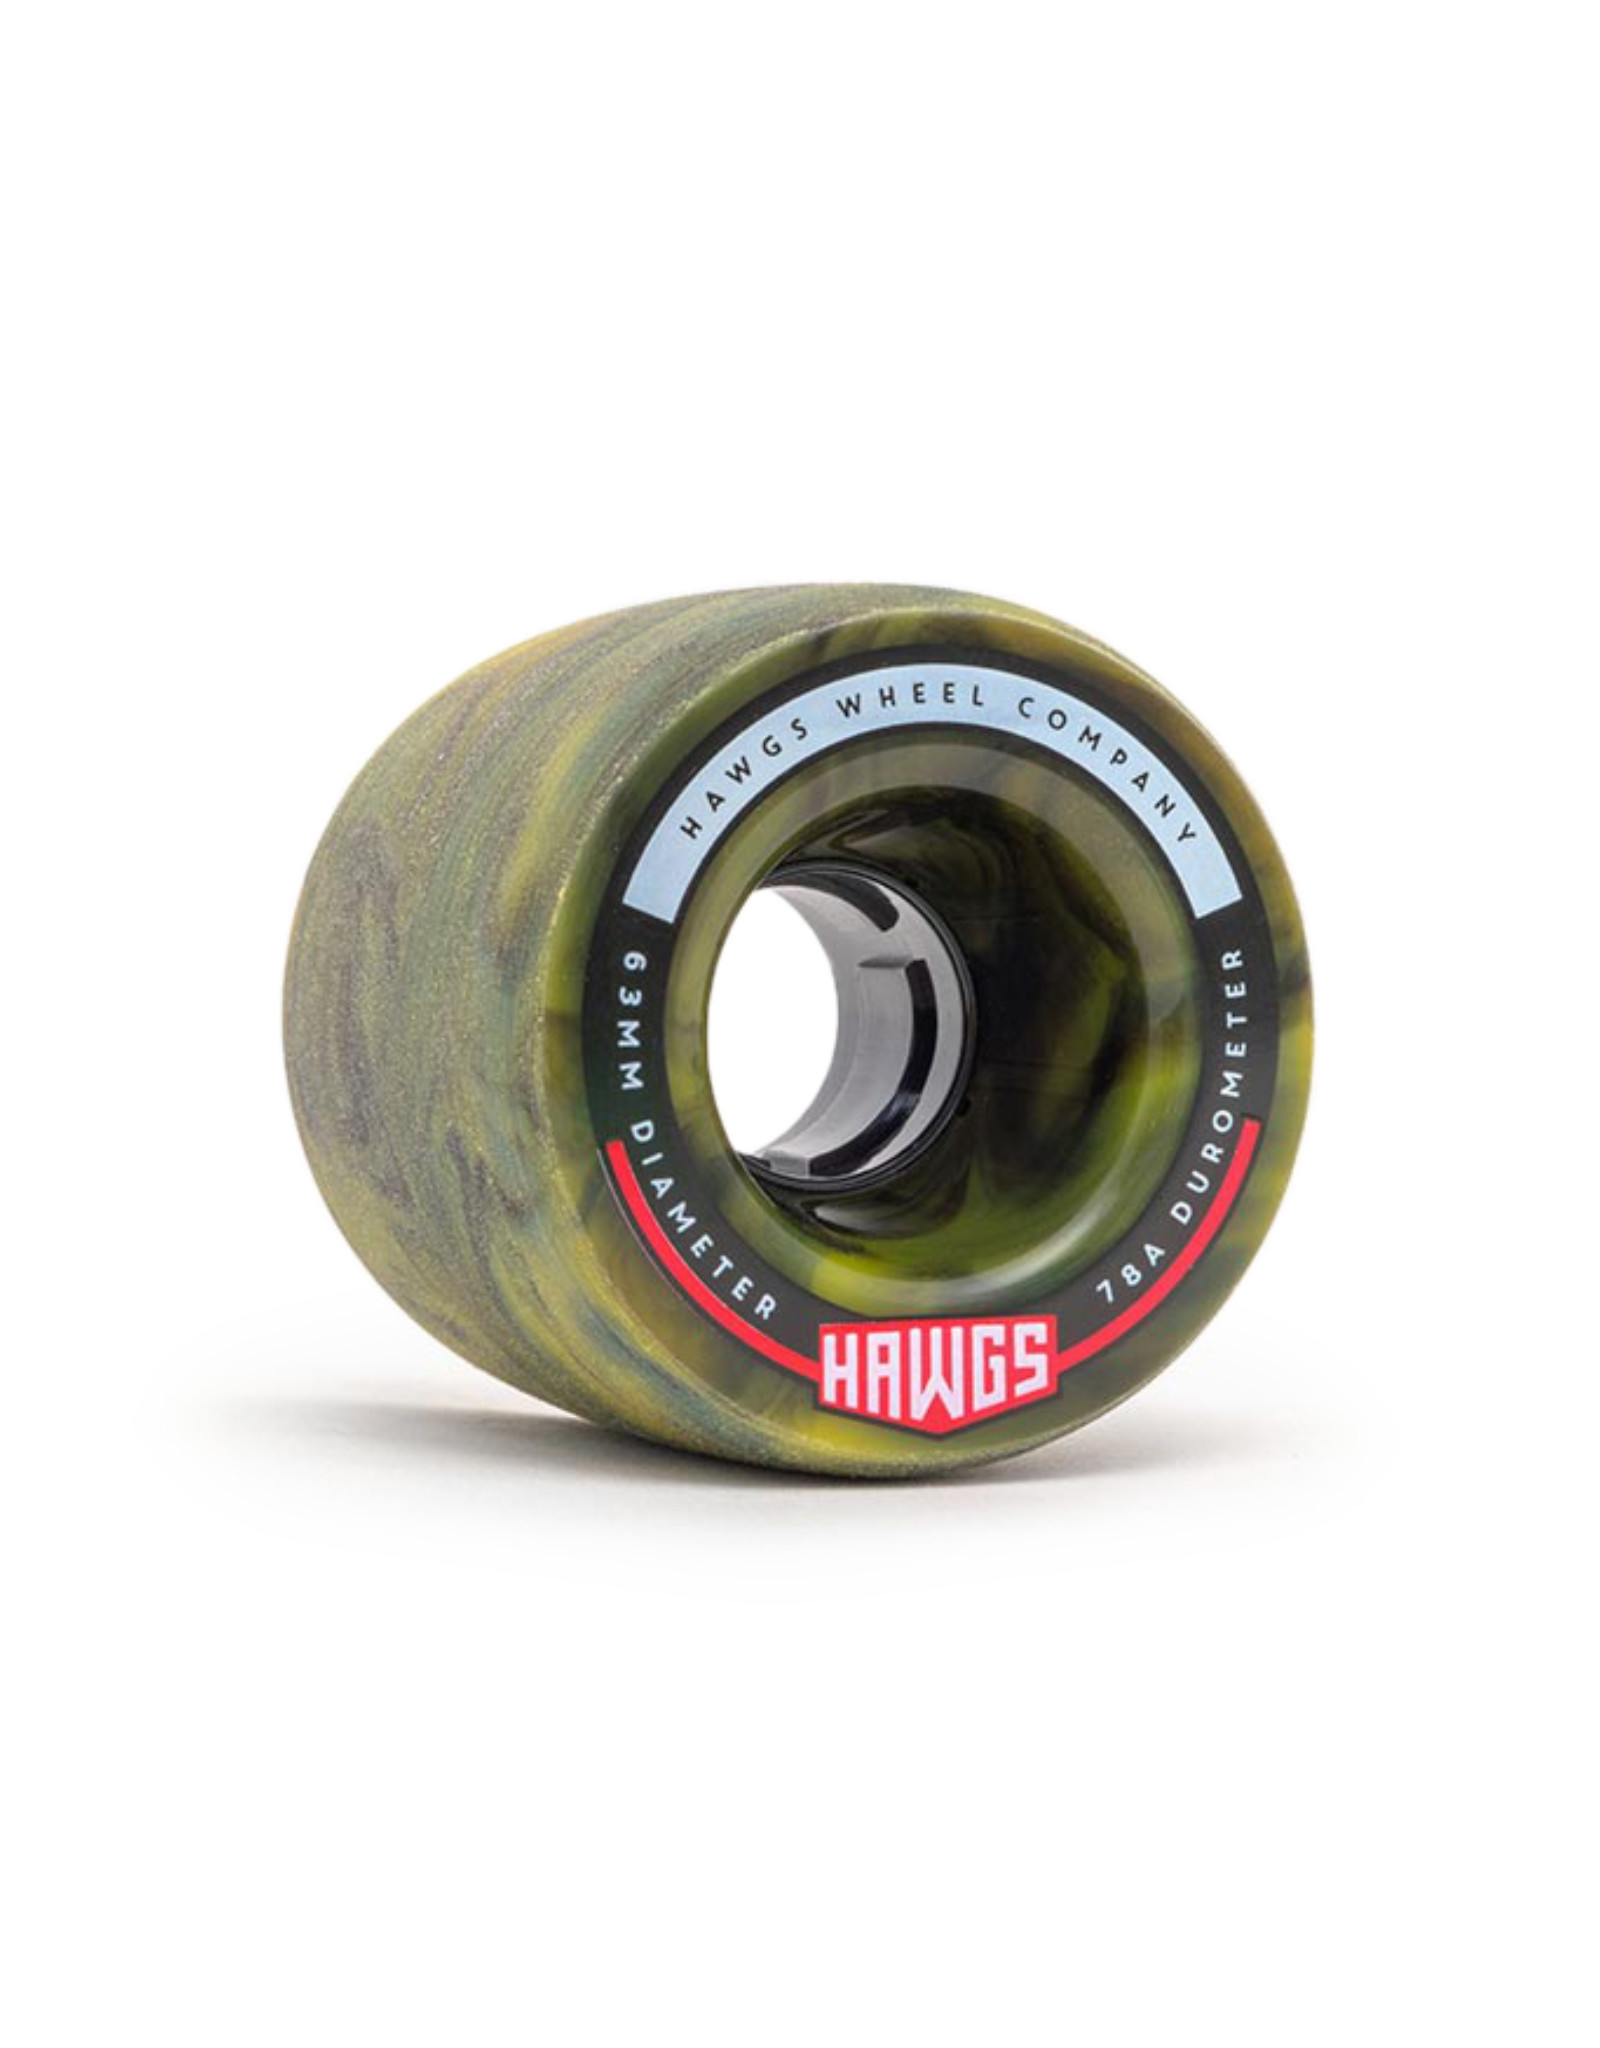 Hawgs Wheels Hawgs Fatty Rollen 63 mm 78A Yellow/Black Swirl 4er-Set